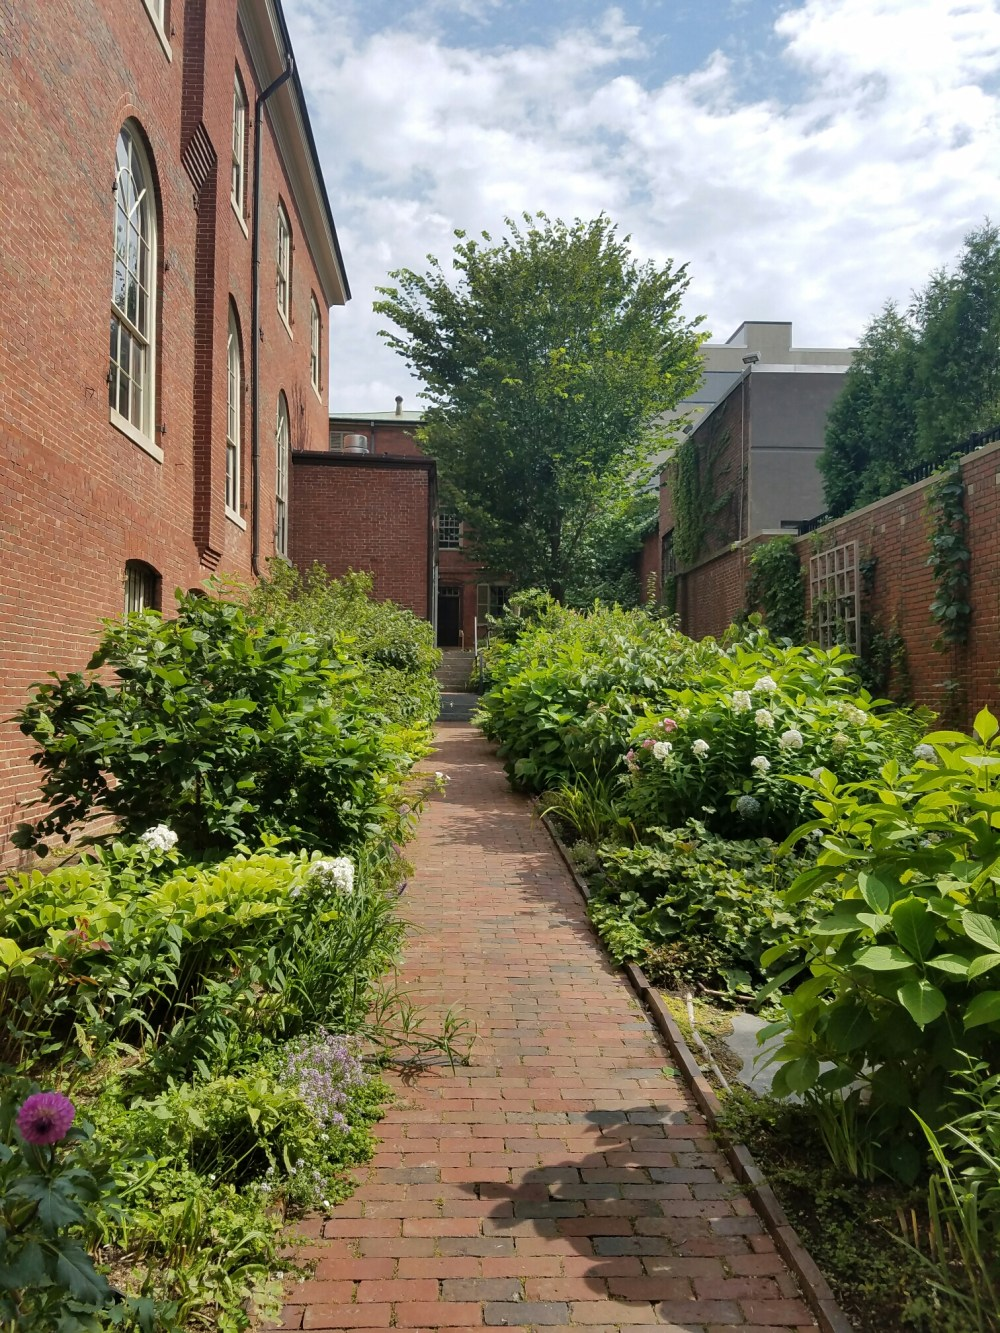 Gardens at the Wadsworth-Longfellow House, former homeof famous poet Henry Wadsworth Longfellow